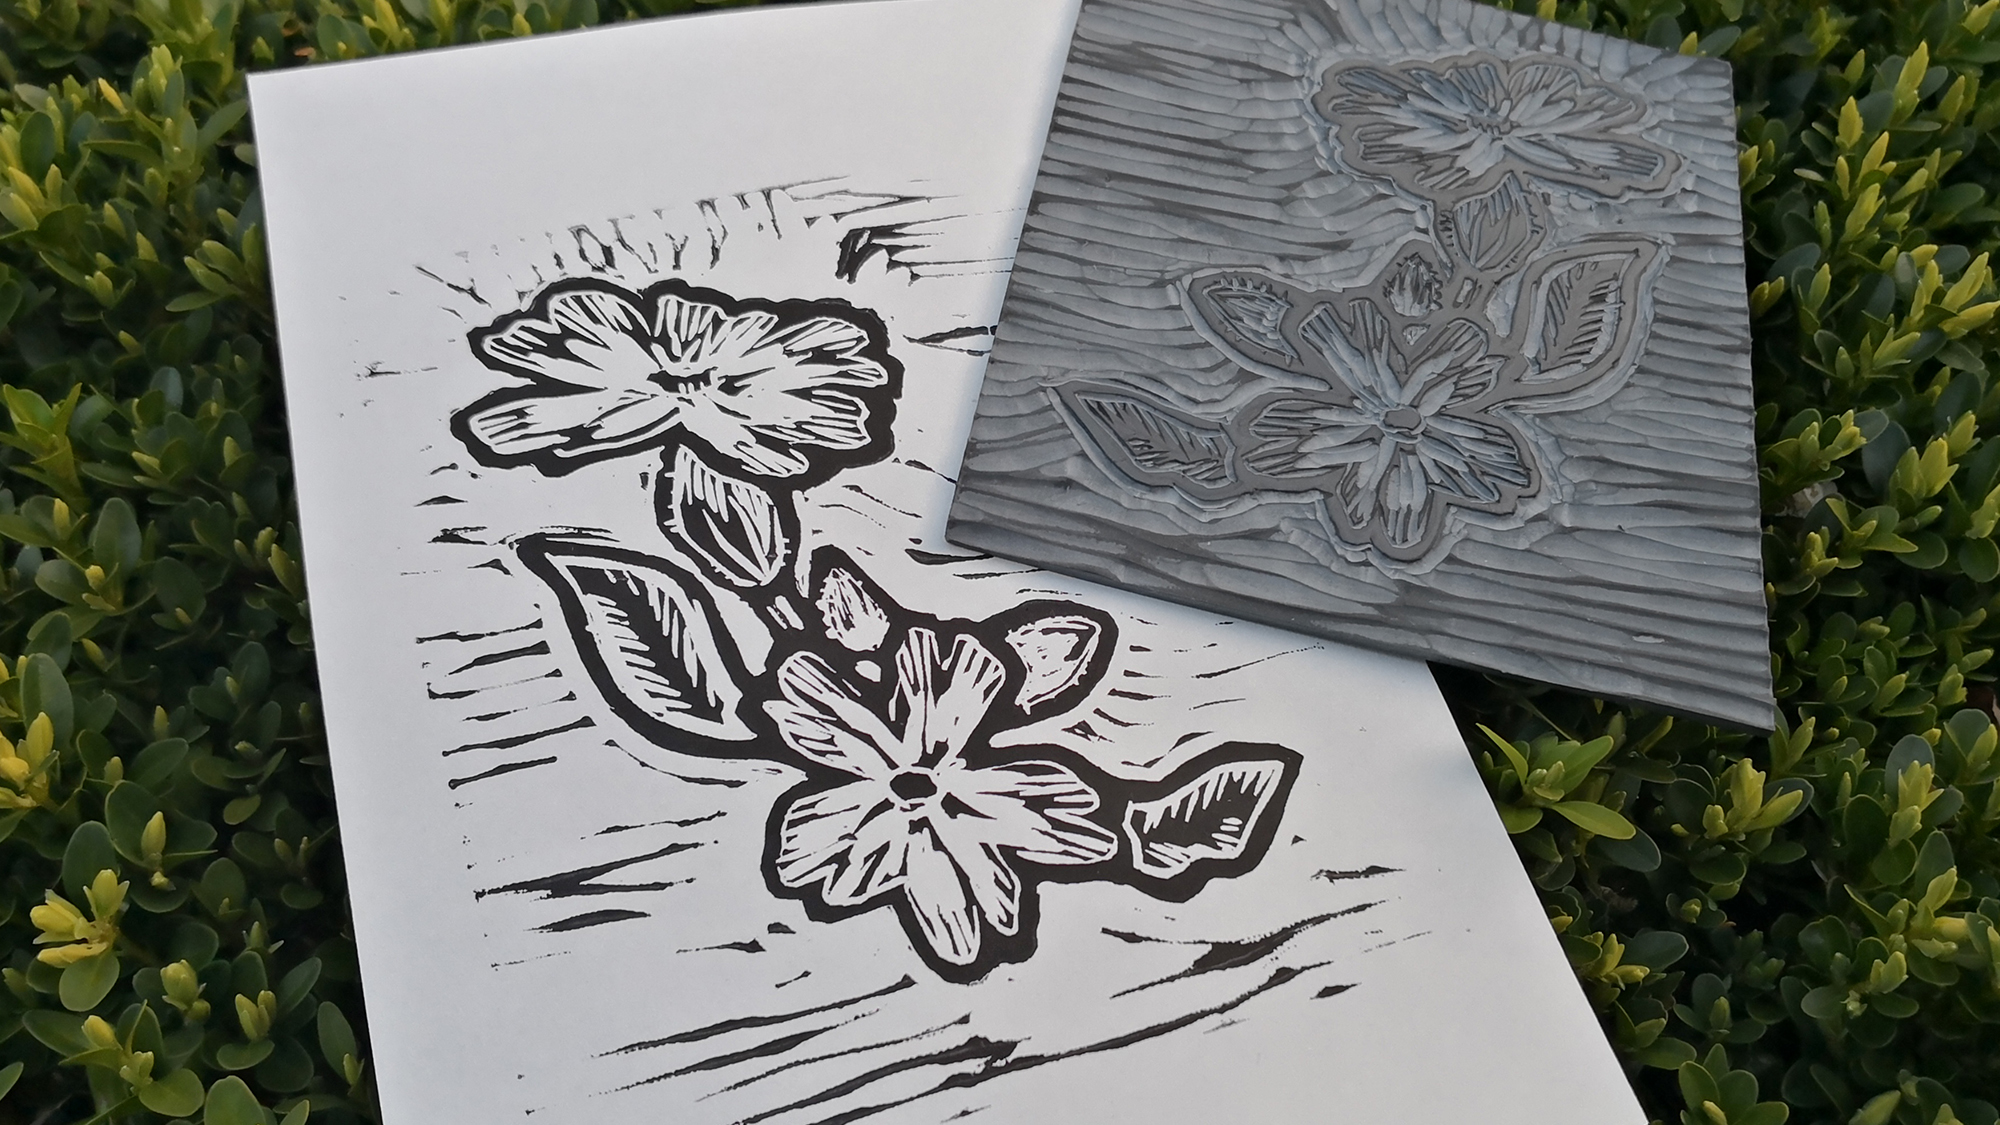 The lino-cut produced for the new Campion Cottage logo